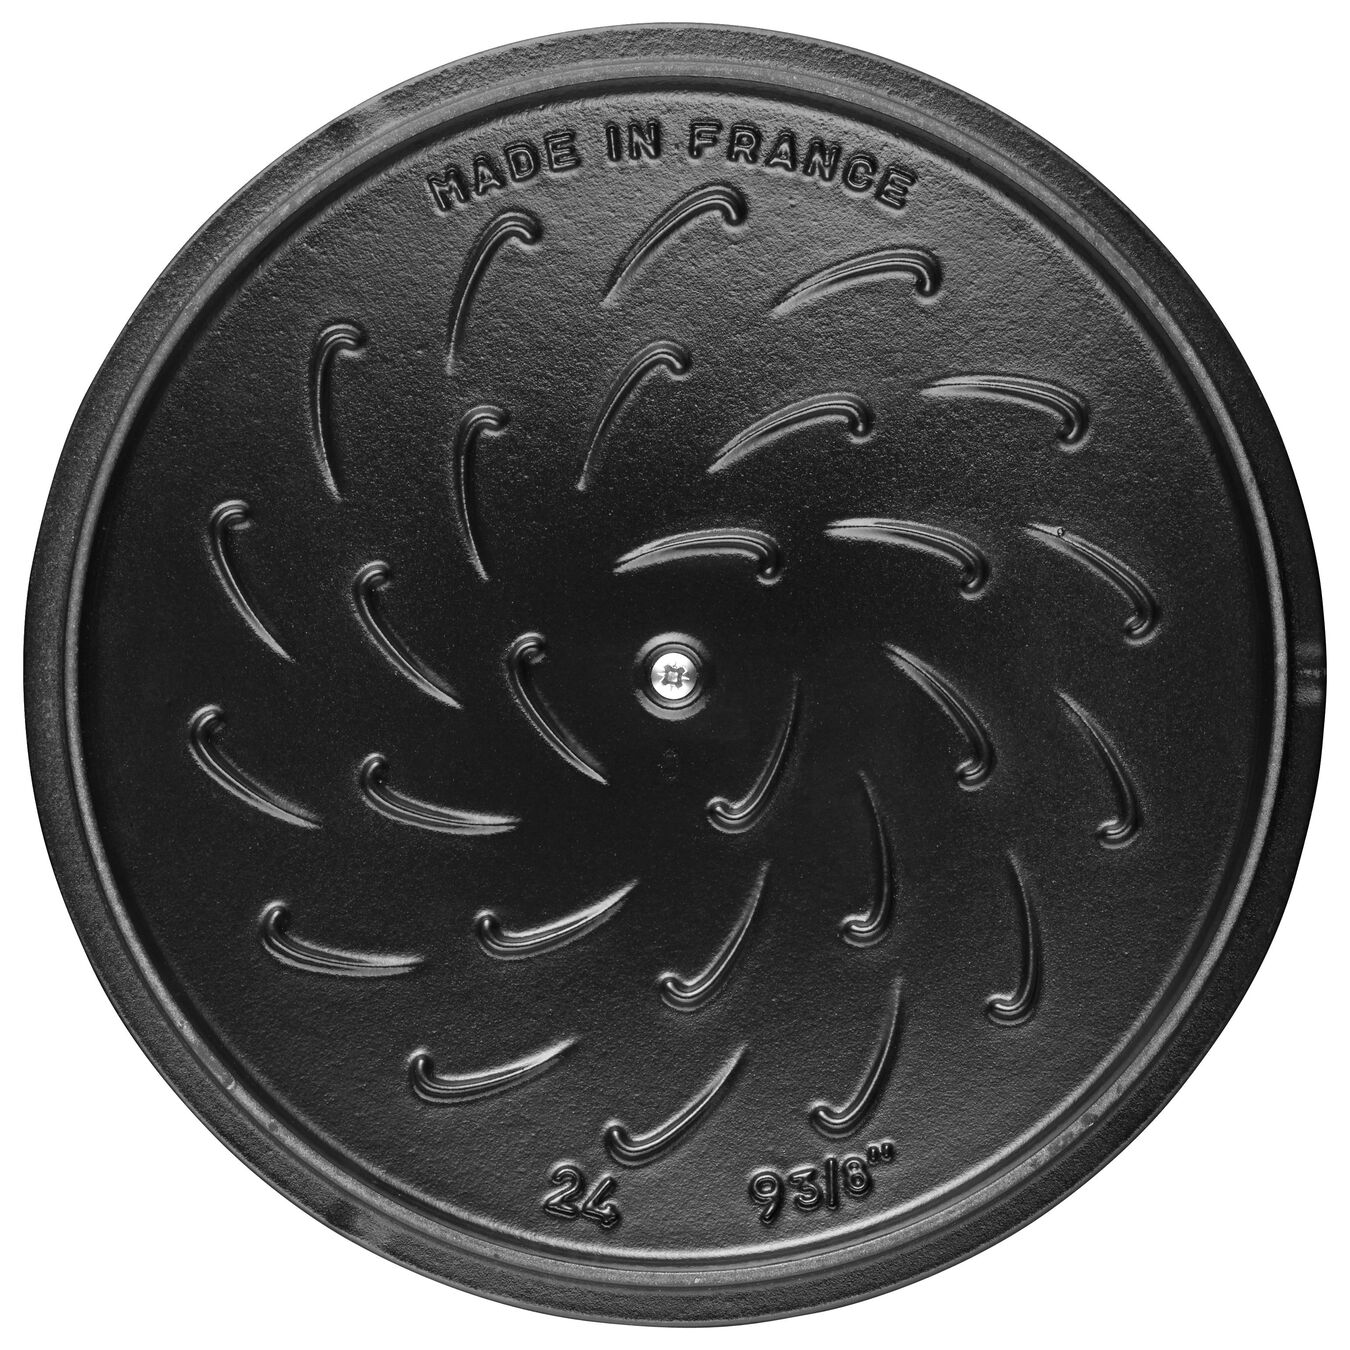 3.75 qt, Essential French Oven Rooster Lid, grenadine,,large 6